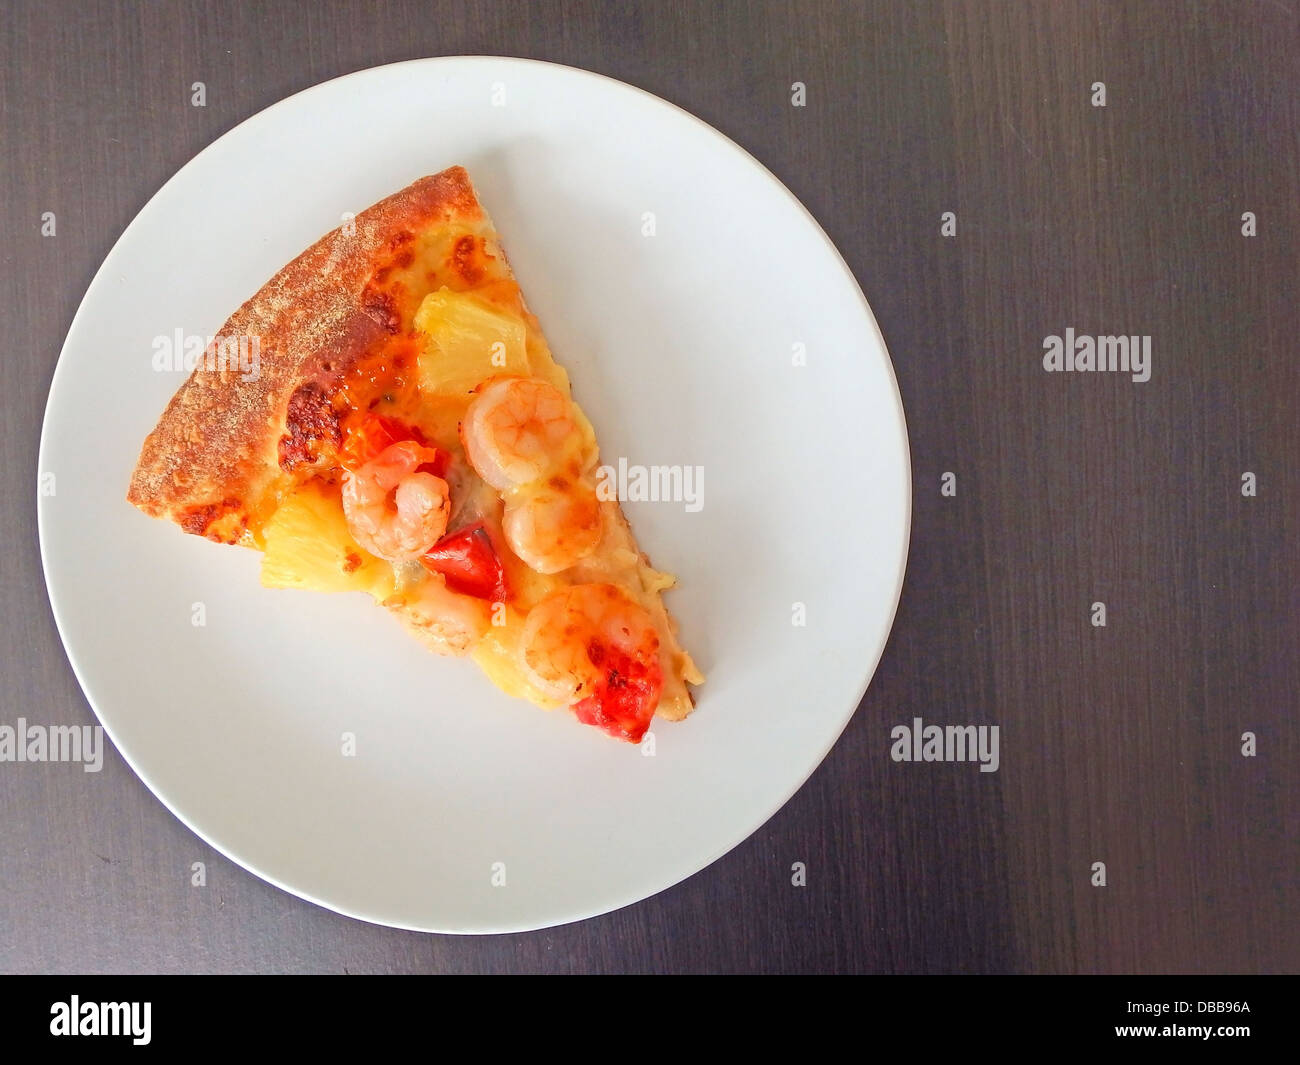 Cut off slice pizza on white dish - Stock Image